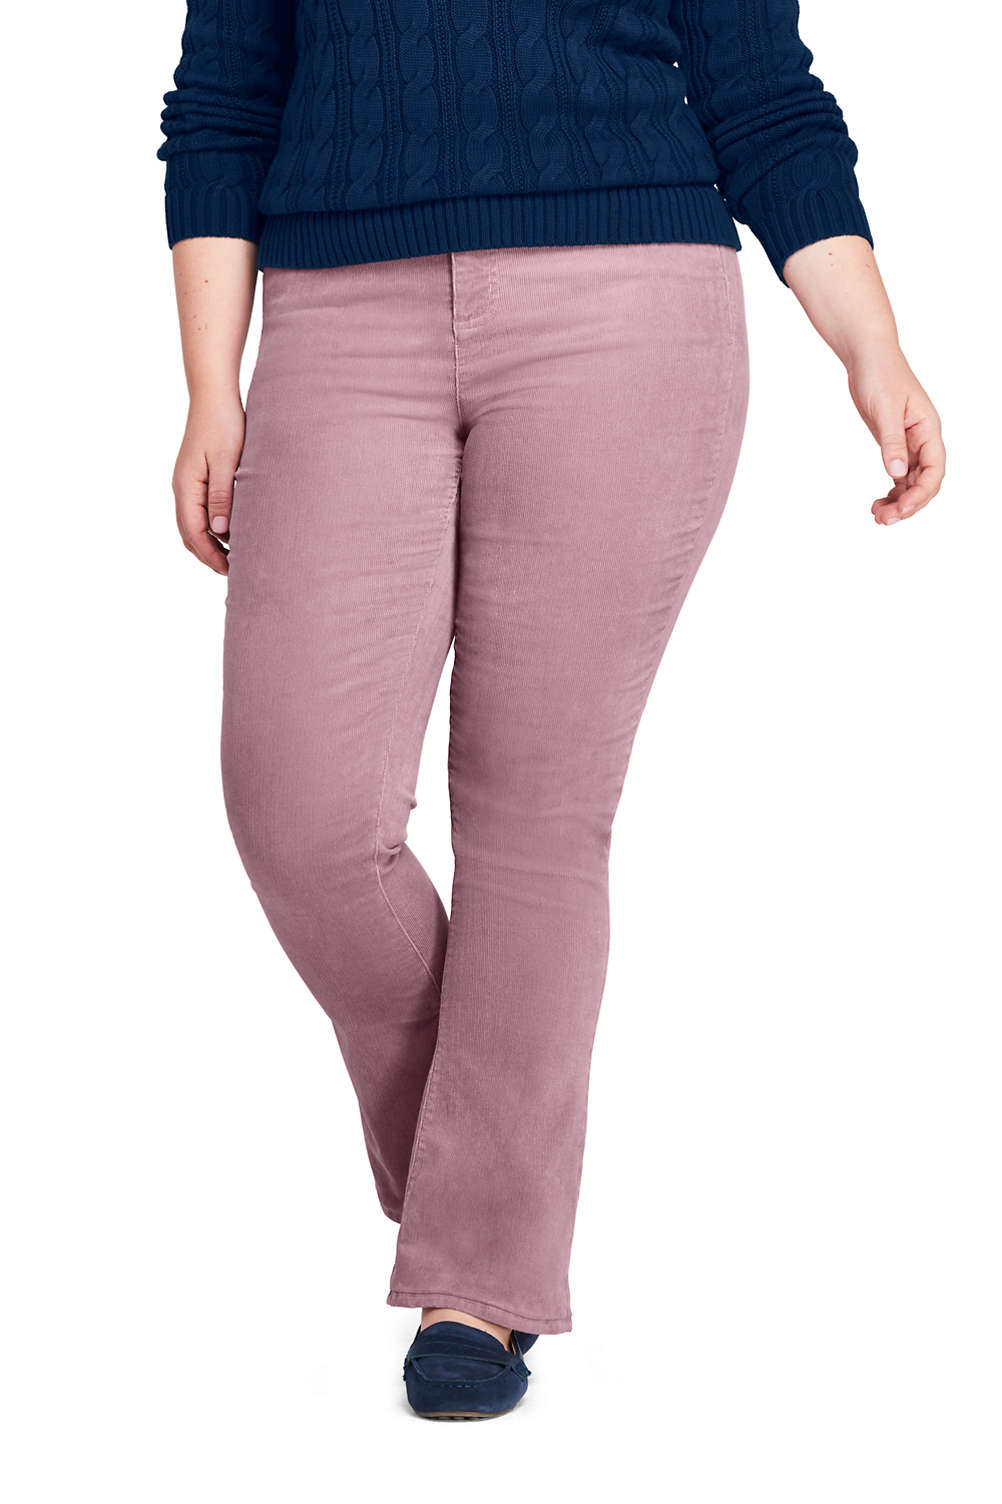 dacf43a423a Women s Plus Size Mid Rise Corduroy Bootcut Pants from Lands  End